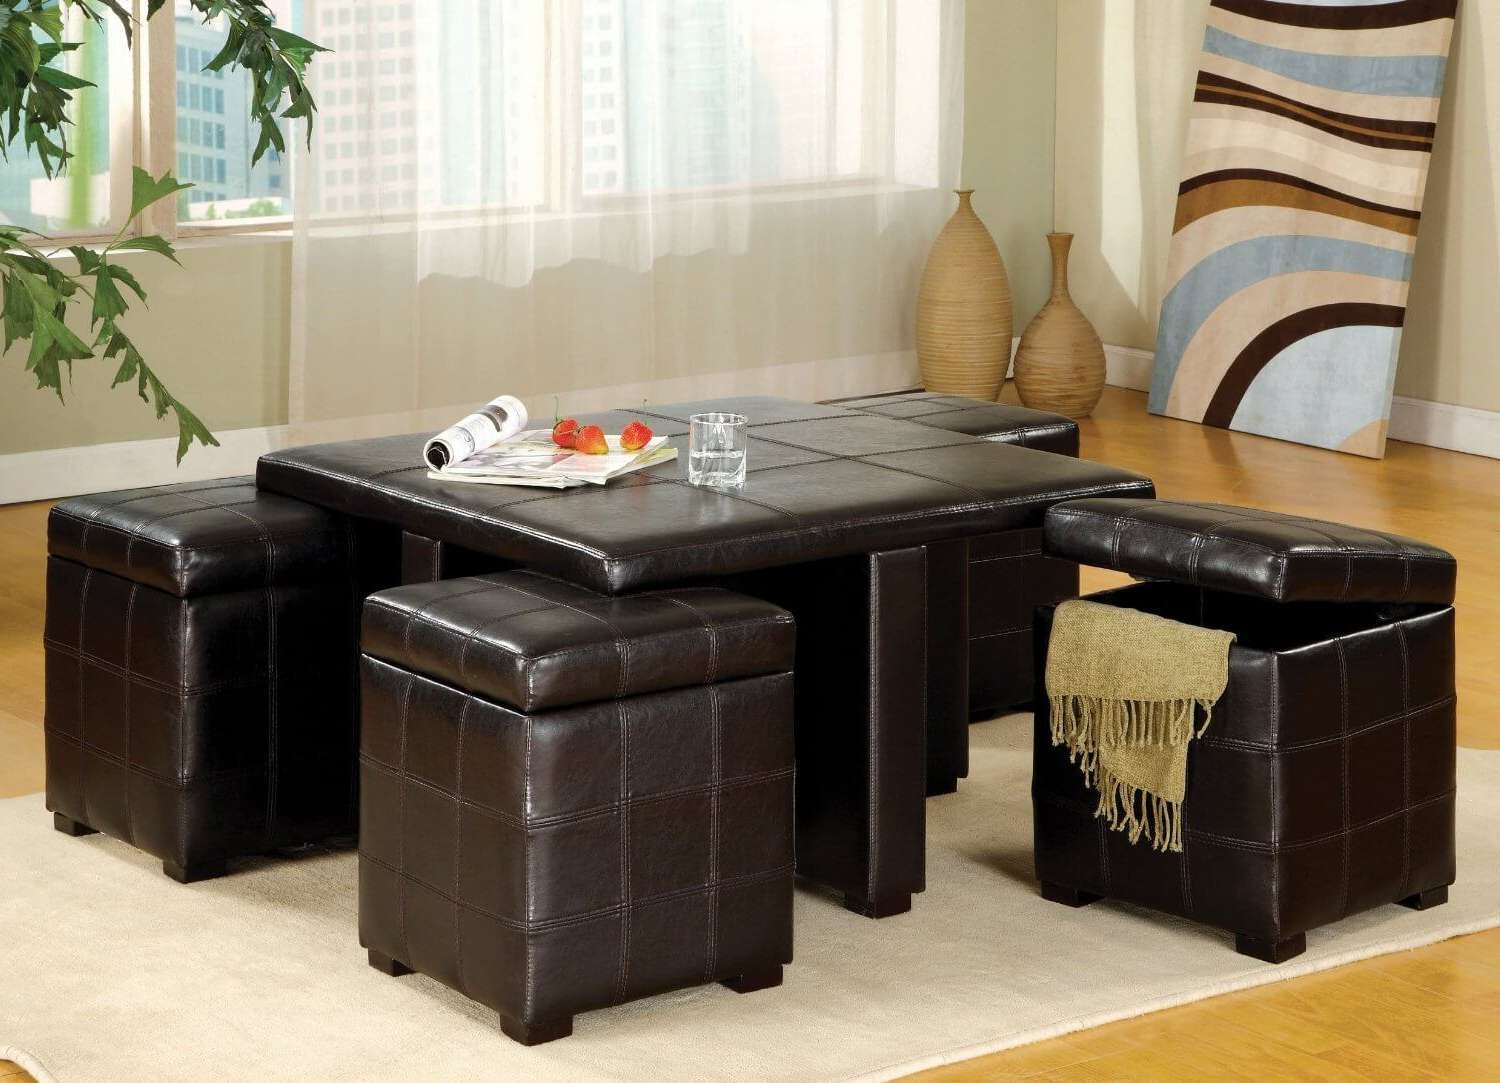 36 Top Brown Leather Ottoman Coffee Tables For Most Recent Brown Leather Ottoman Coffee Tables With Storages (View 11 of 20)